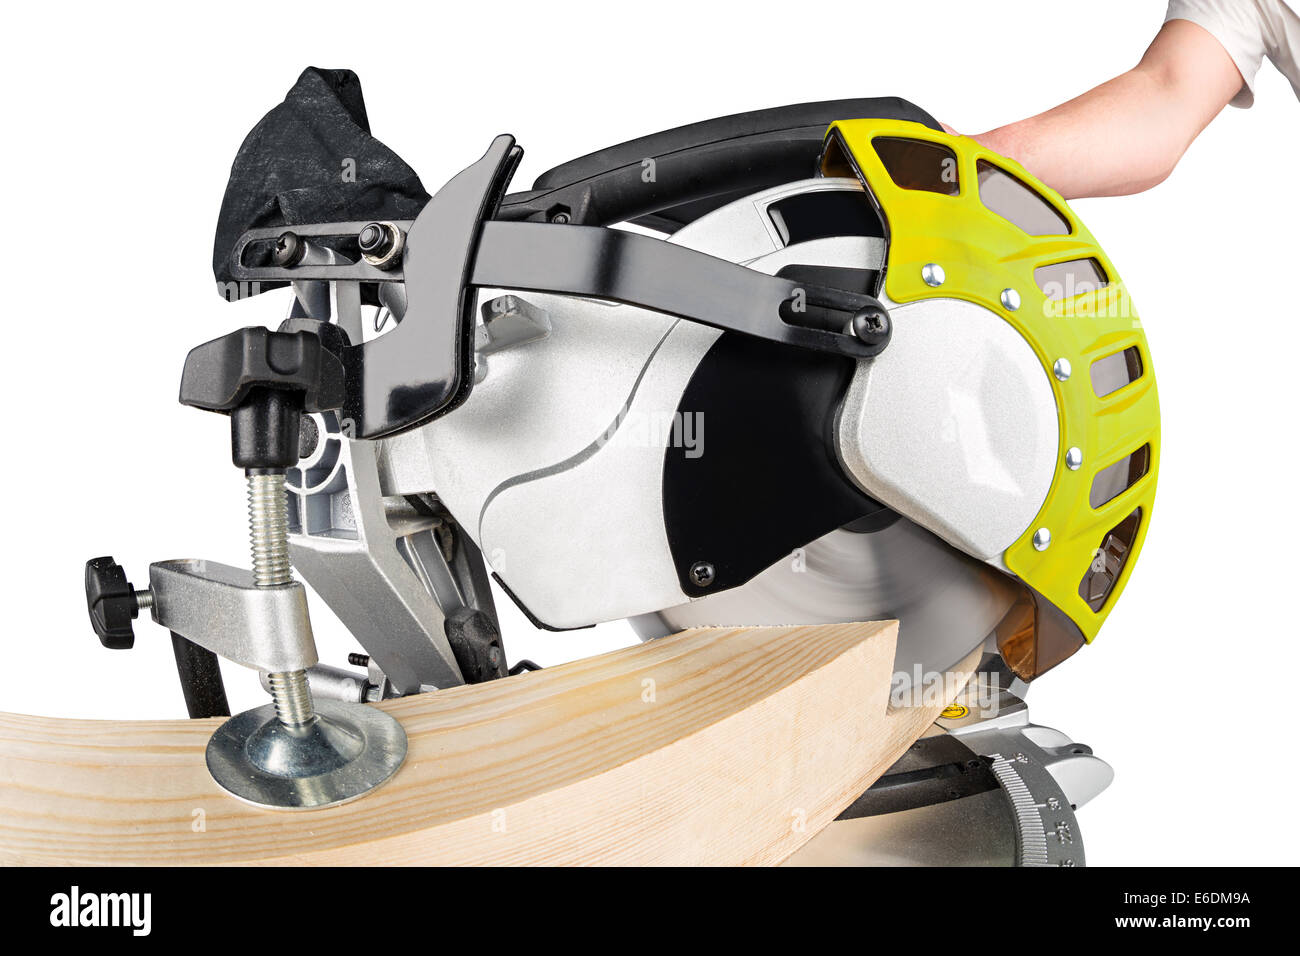 miter saw cutting a wooden beam Stock Photo